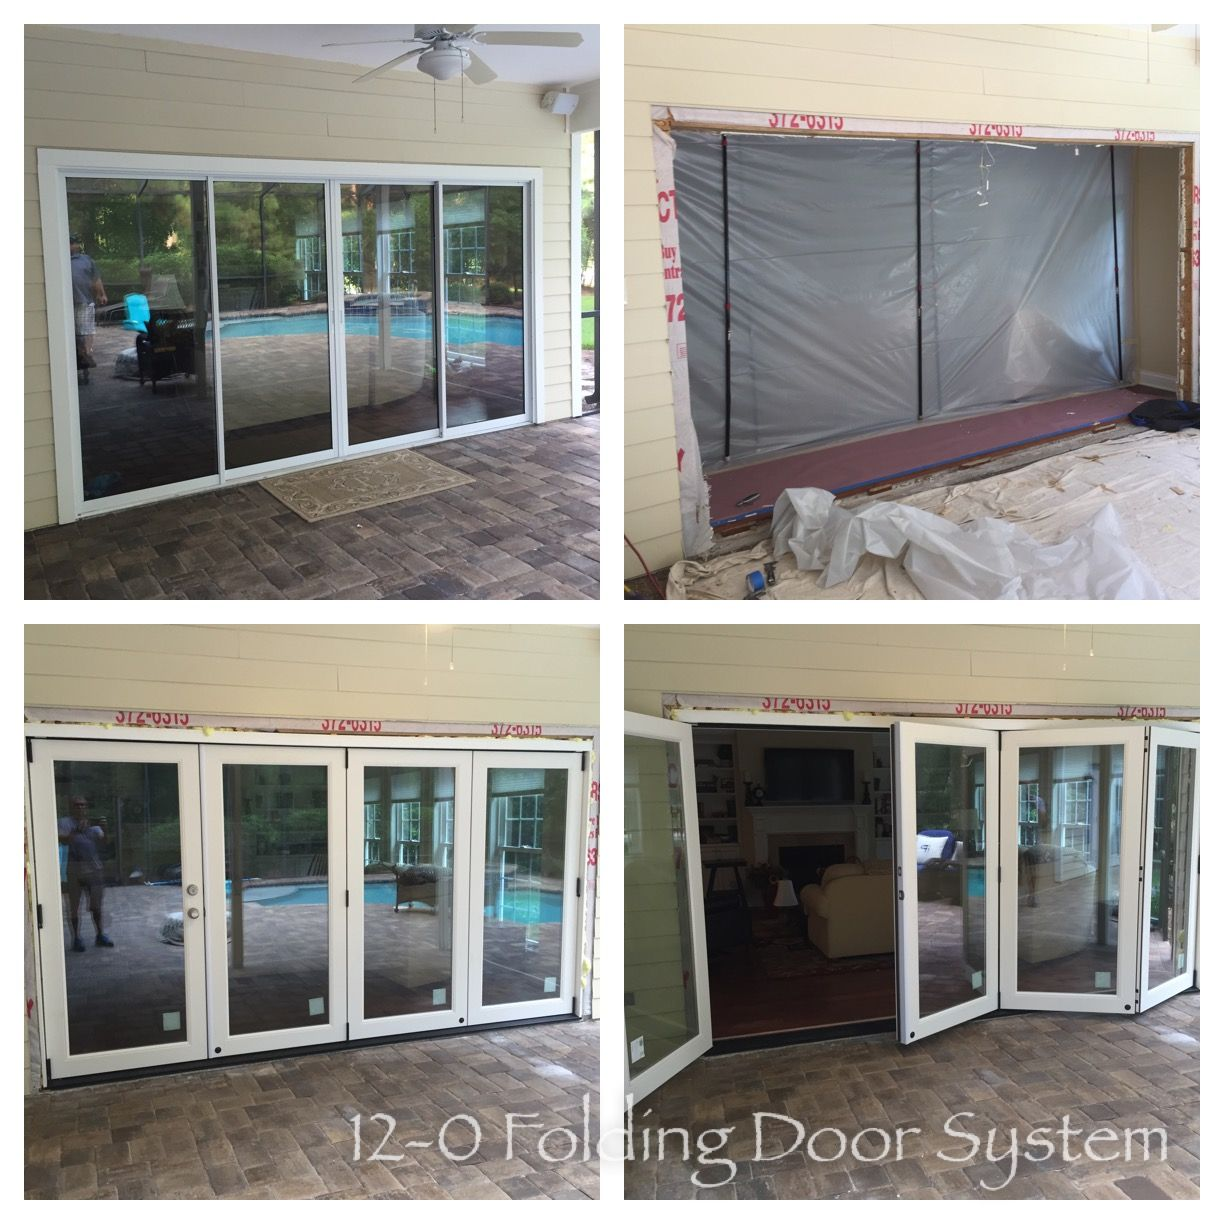 12 0 6 8 Exterior Unit With 4 Panel Foldingdoor System With Fiberglass Doors With Images Door Installation Folding Doors Doors